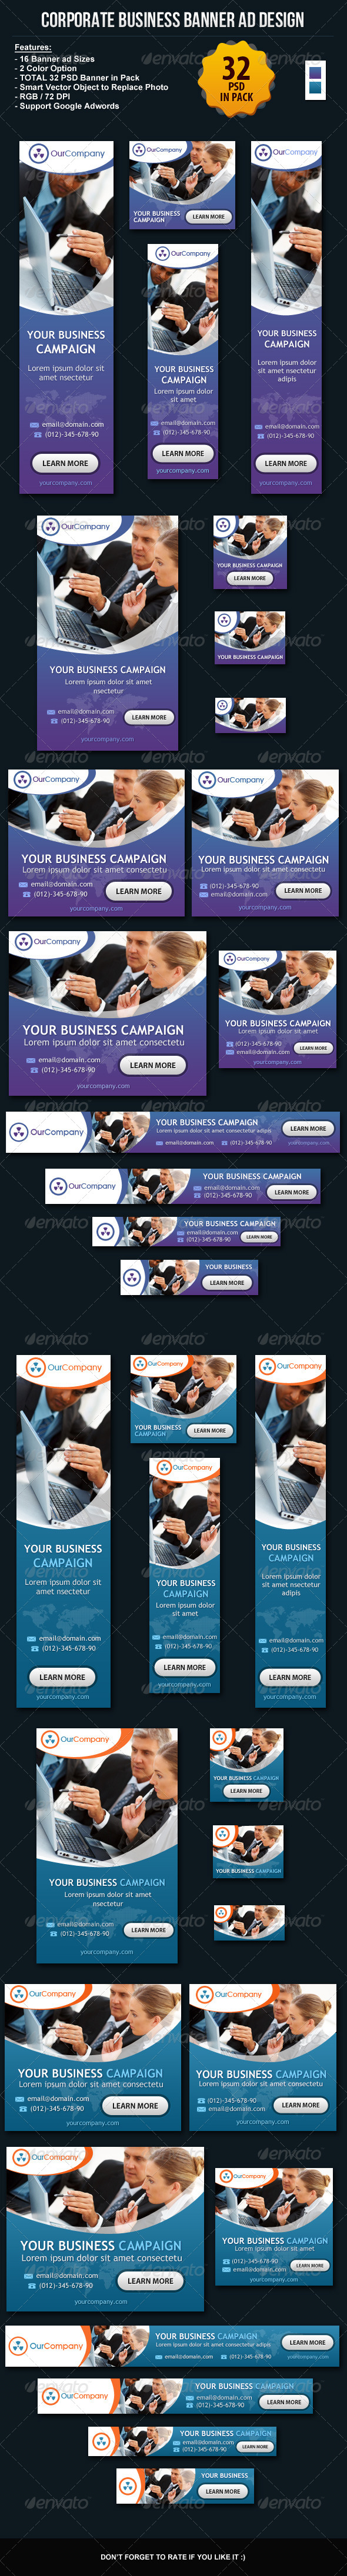 Corporate Business Banner ad Design Set - Banners & Ads Web Elements